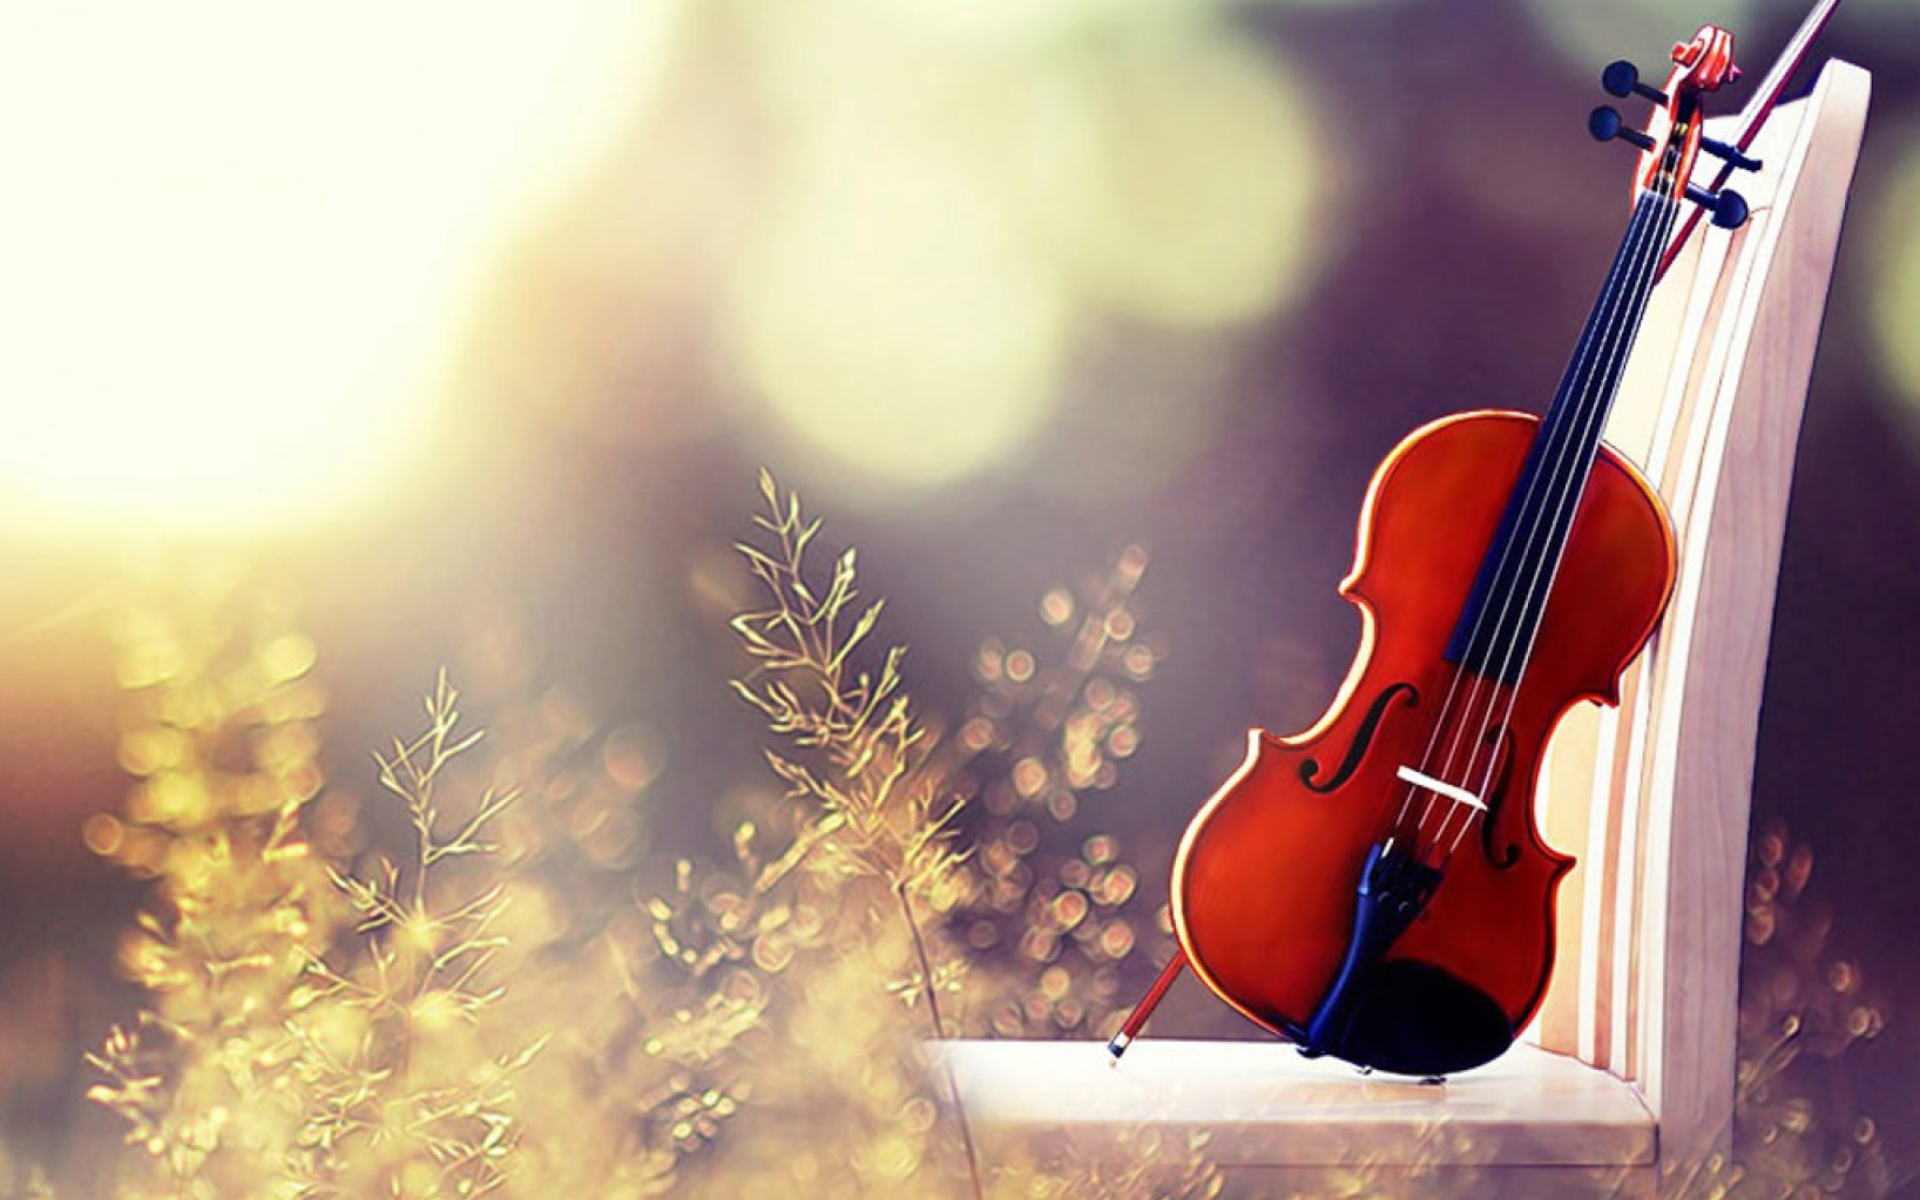 Violin Wallpaper for Widescreen Desktop PC 1920x1080 Full HD